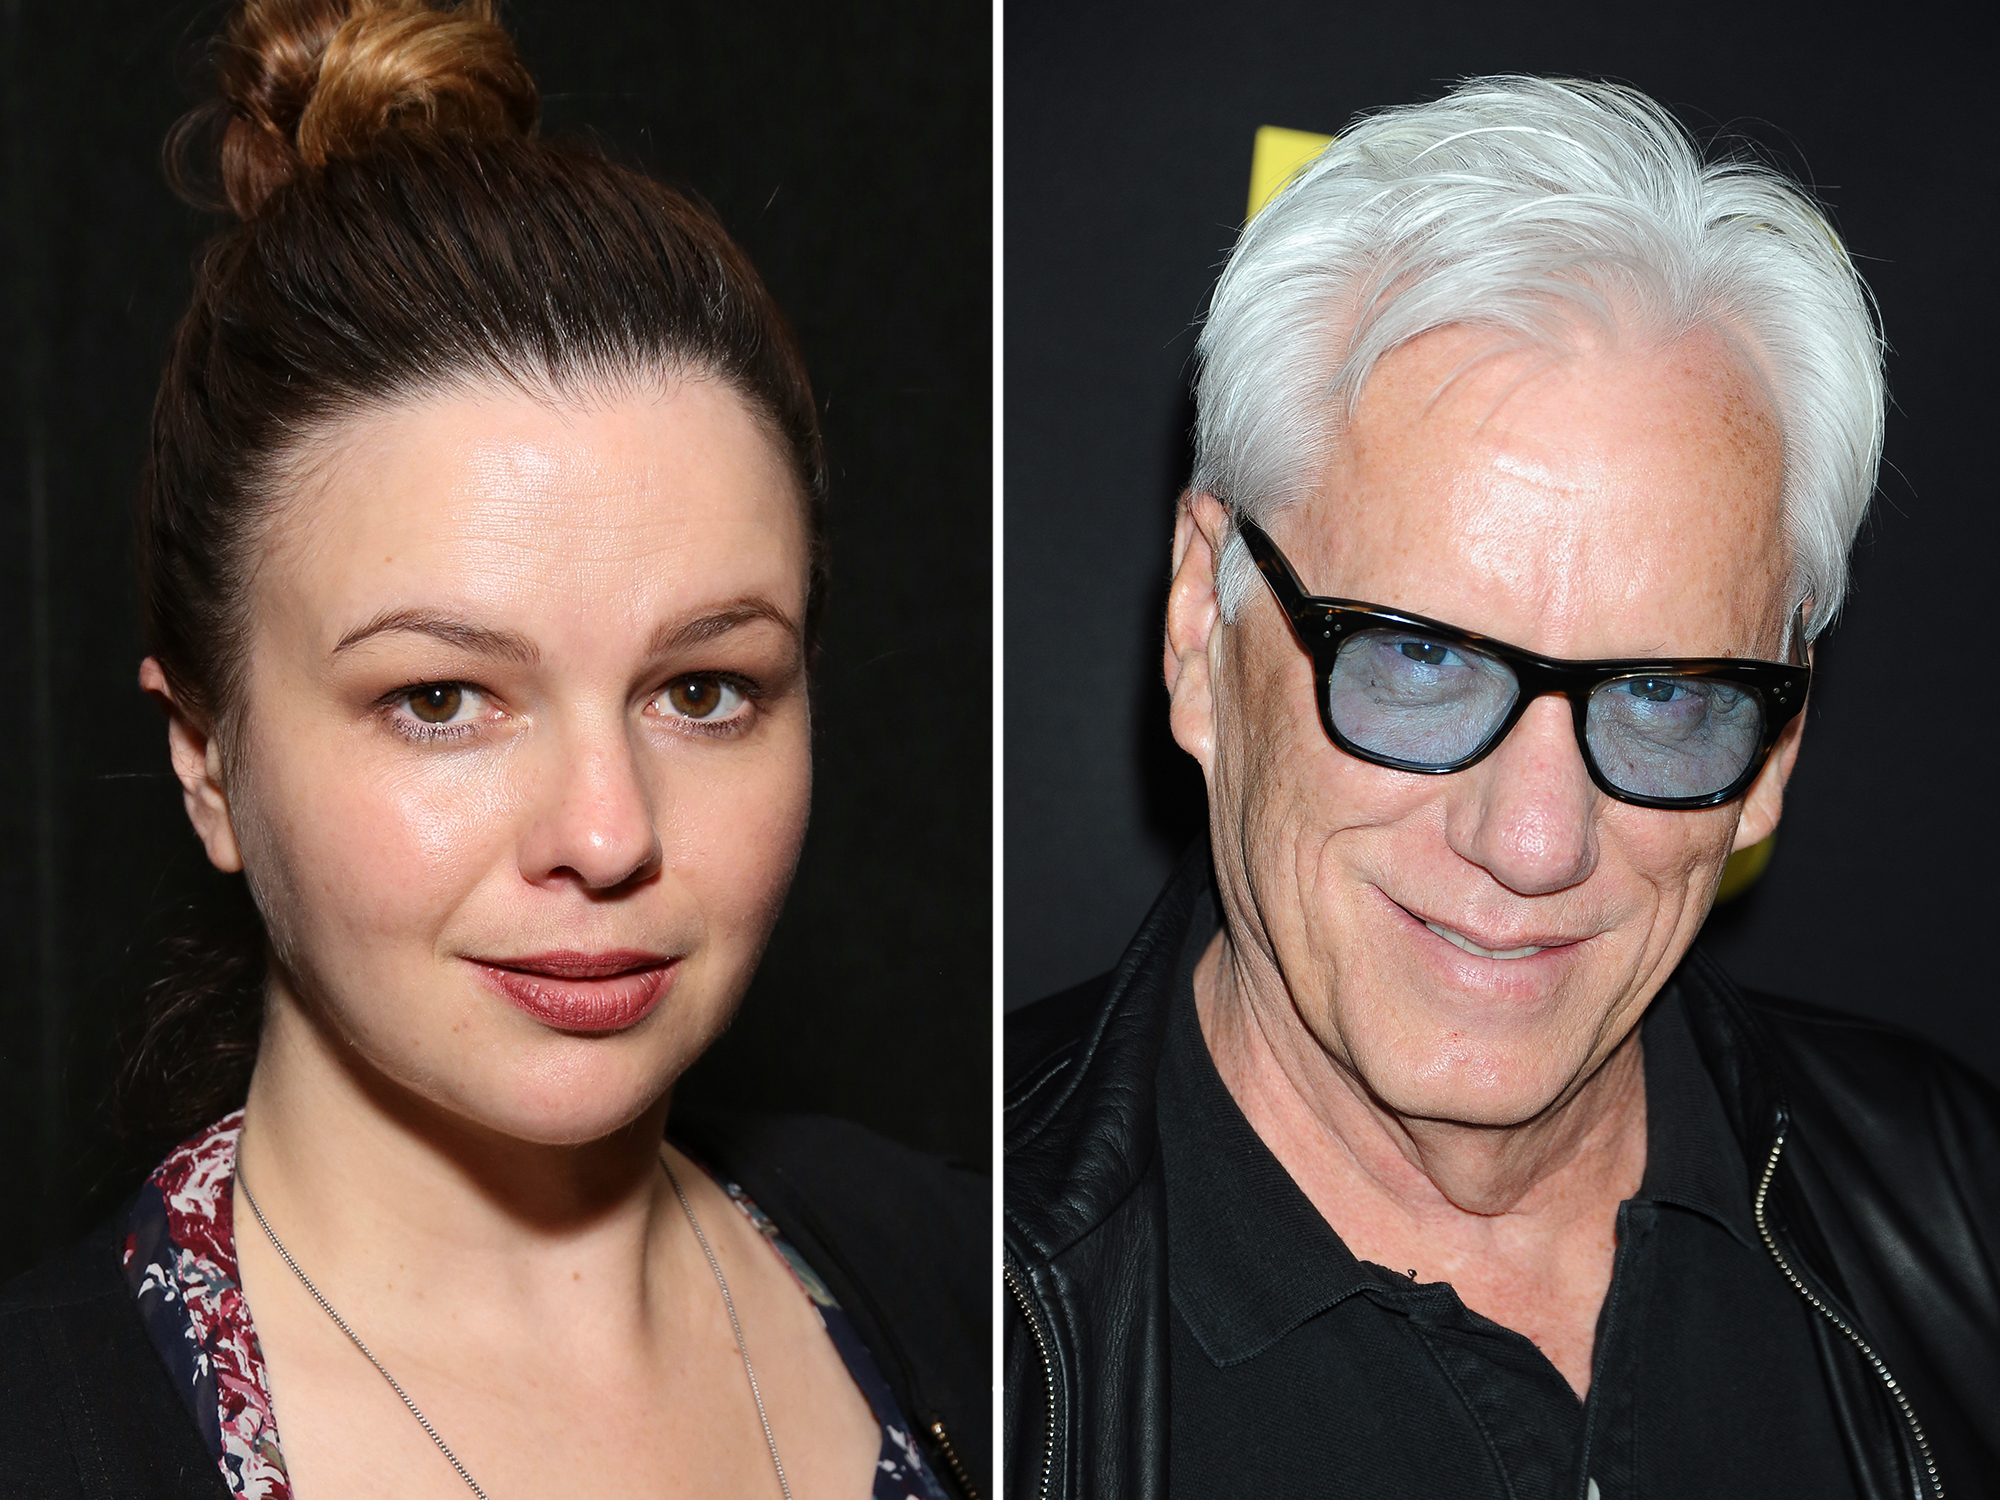 Amber Tamblyn Calls Out James Woods in a Powerful Open Letter